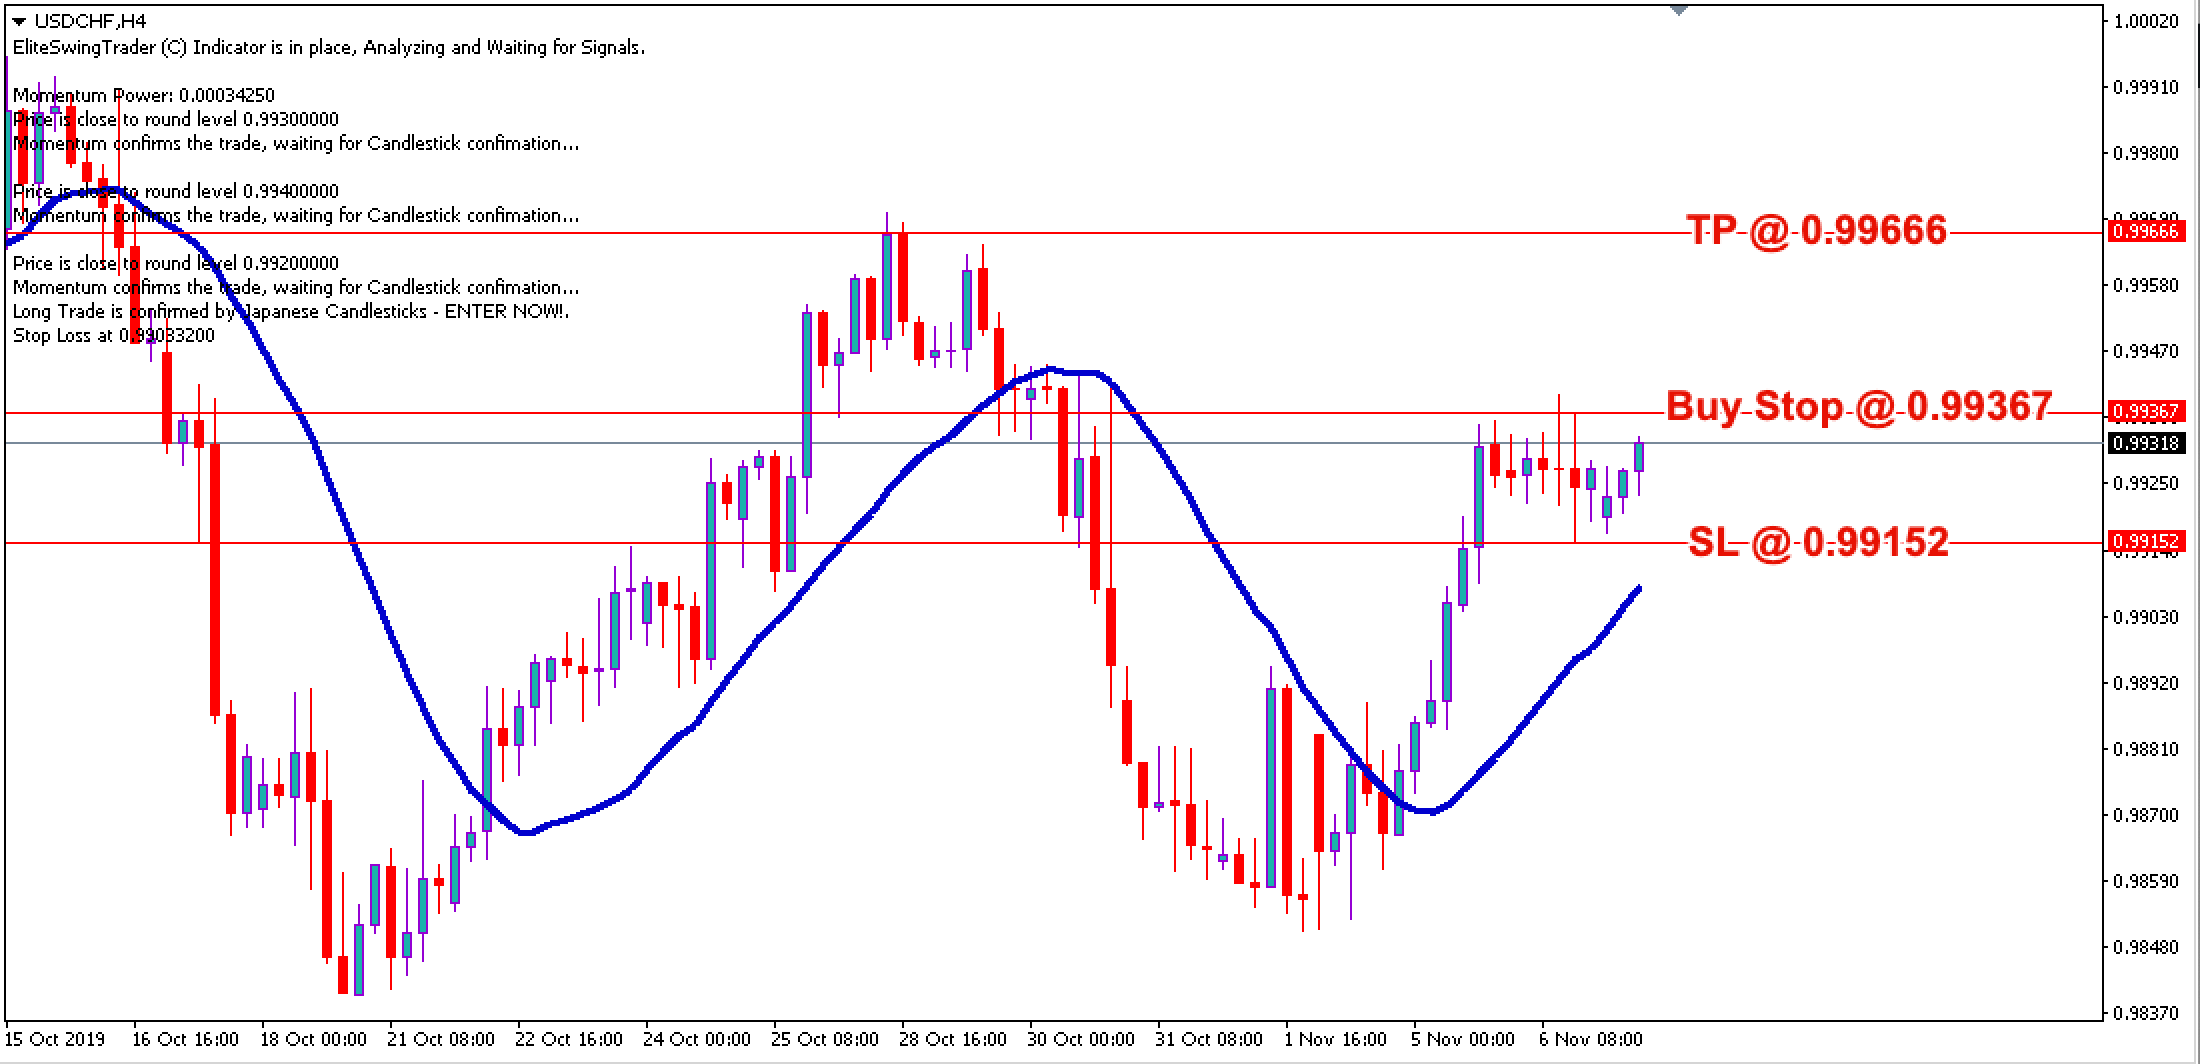 Free Forex Trade Signals USDCHF – 7th Nov 2019